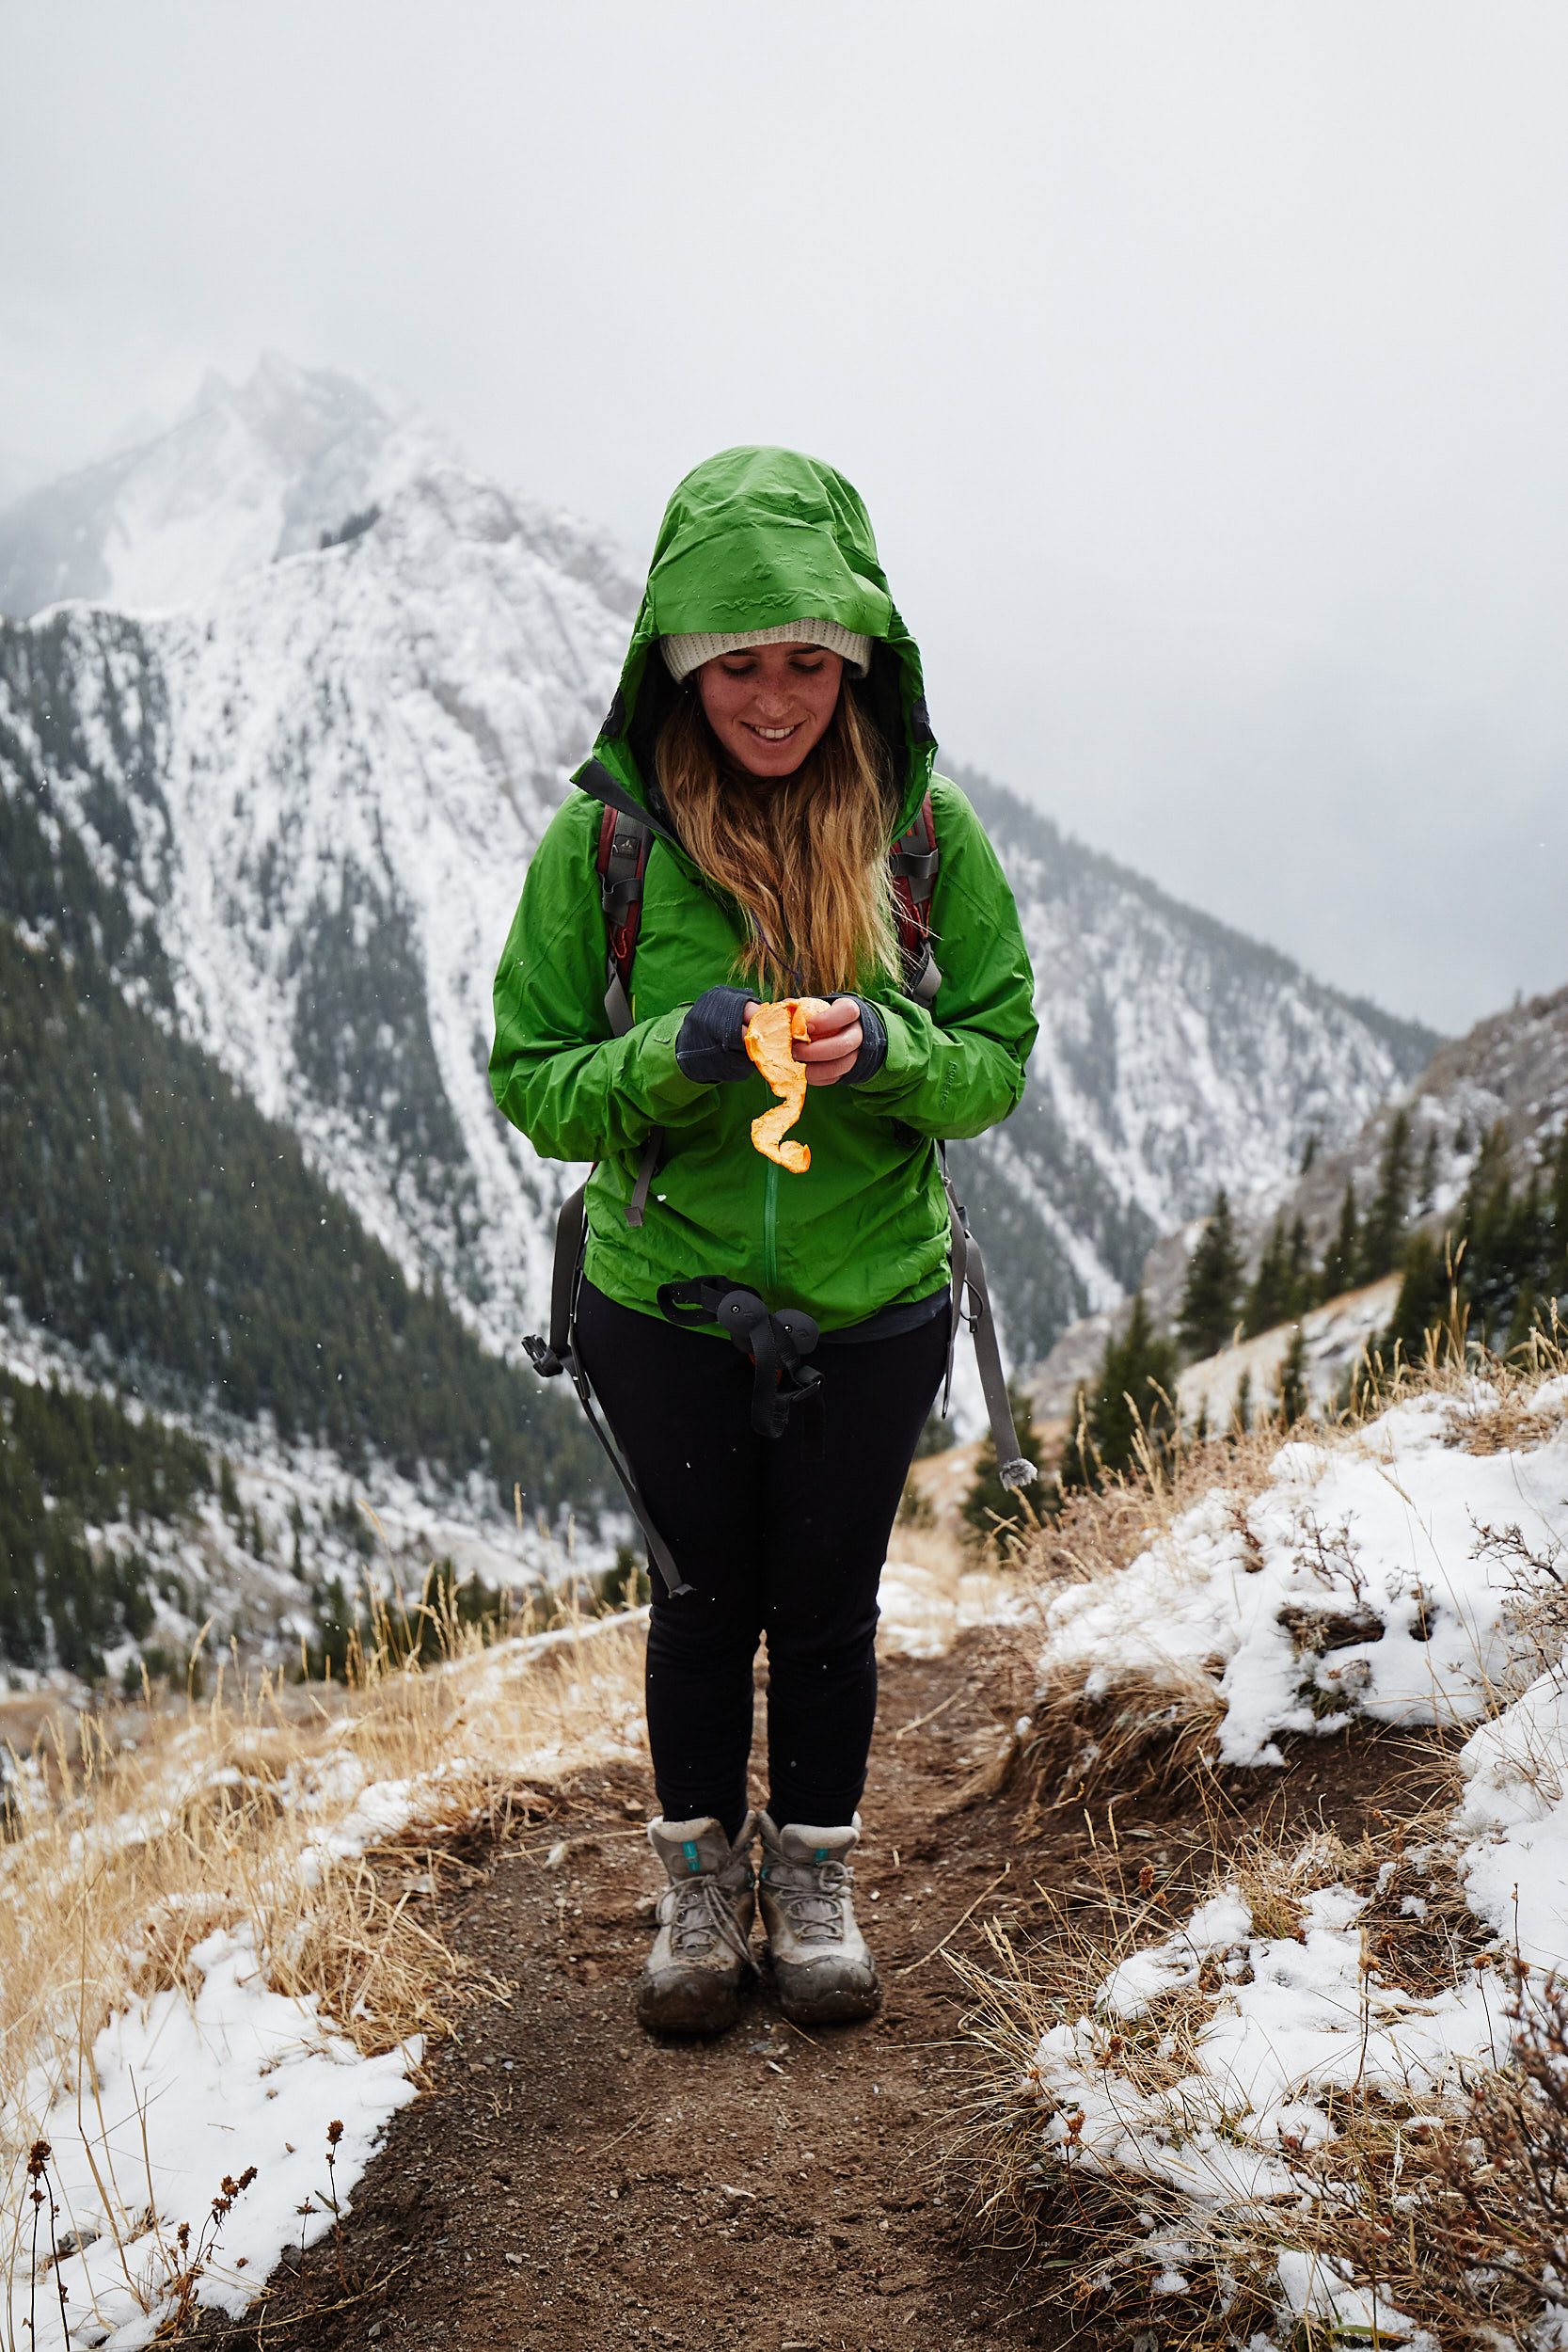 As neared the top we stopped for a quick snack as some heavy snow began to fall.